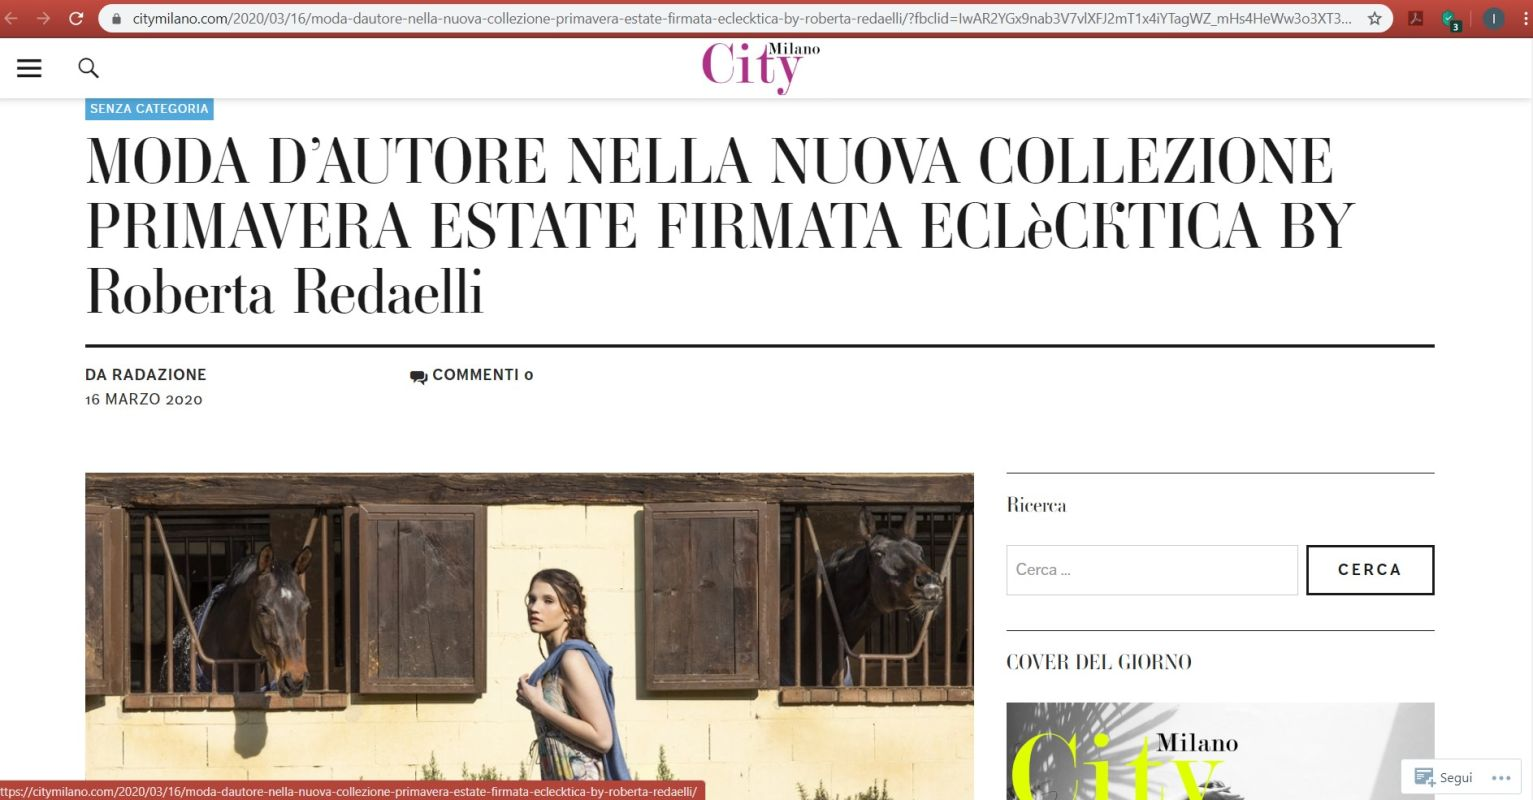 City Milano roberta redaelli and massimiliano miazzo spring summer 2020 spirito libero 17th march 2020